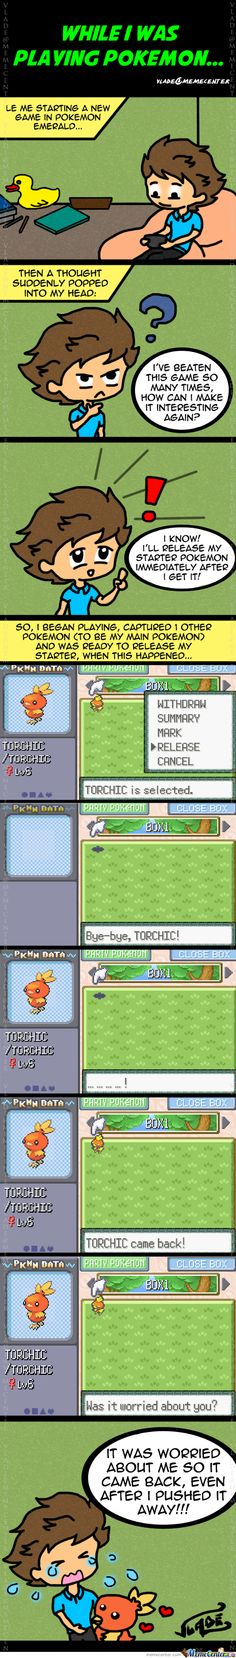 Pokémon - Torchic cares! Is it not possible to release your starter, then?